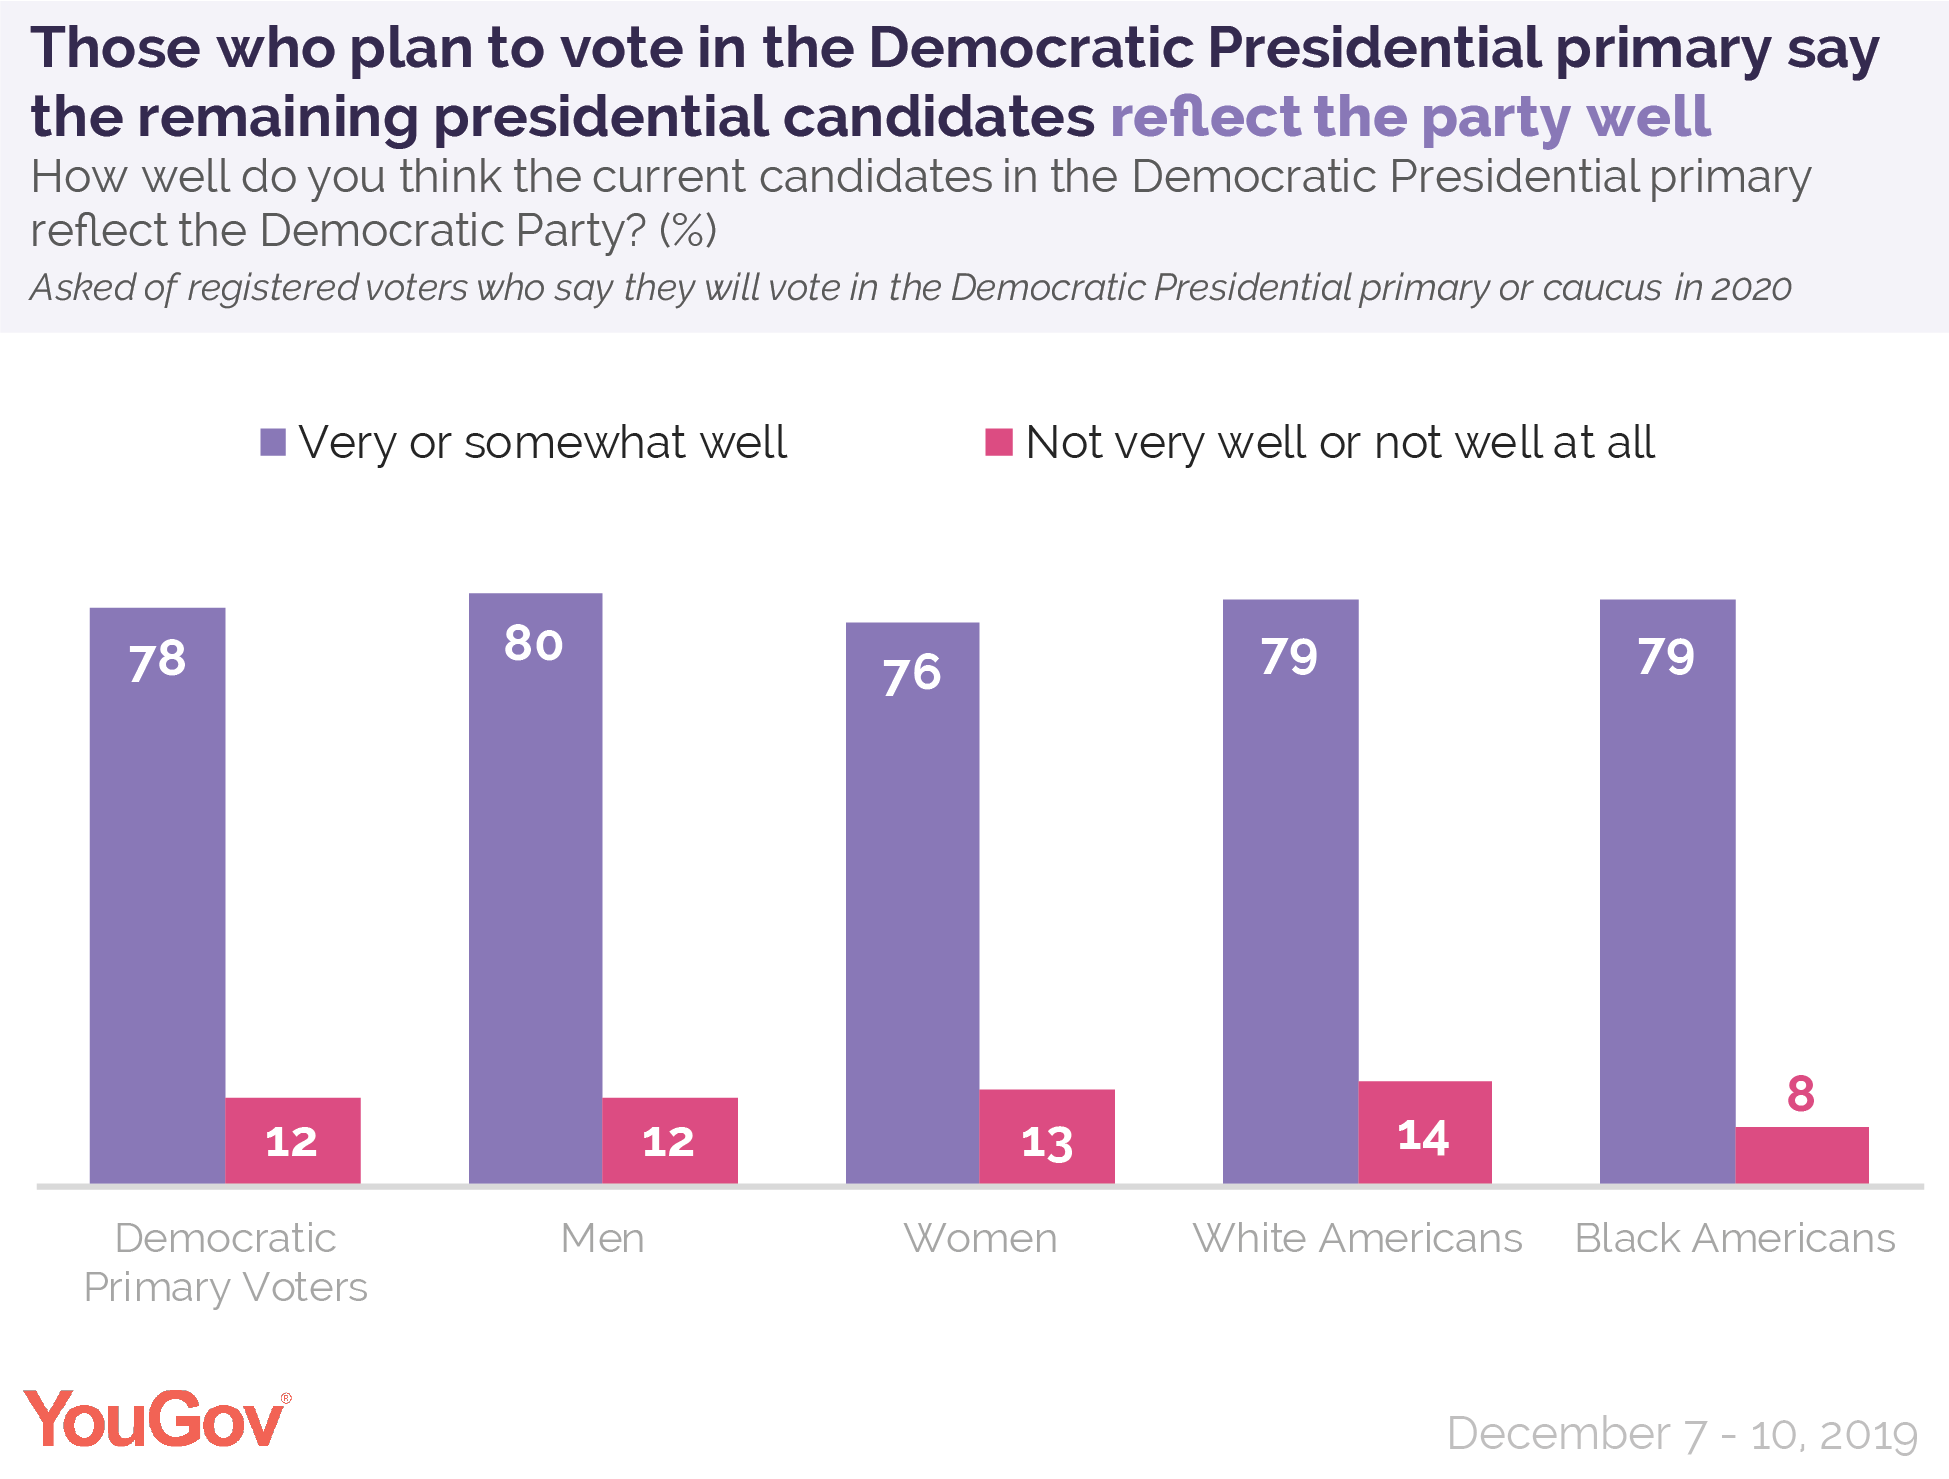 Those who plan to vote in the Democratic Presidential primary say the remaining presidential candidates reflect the party well